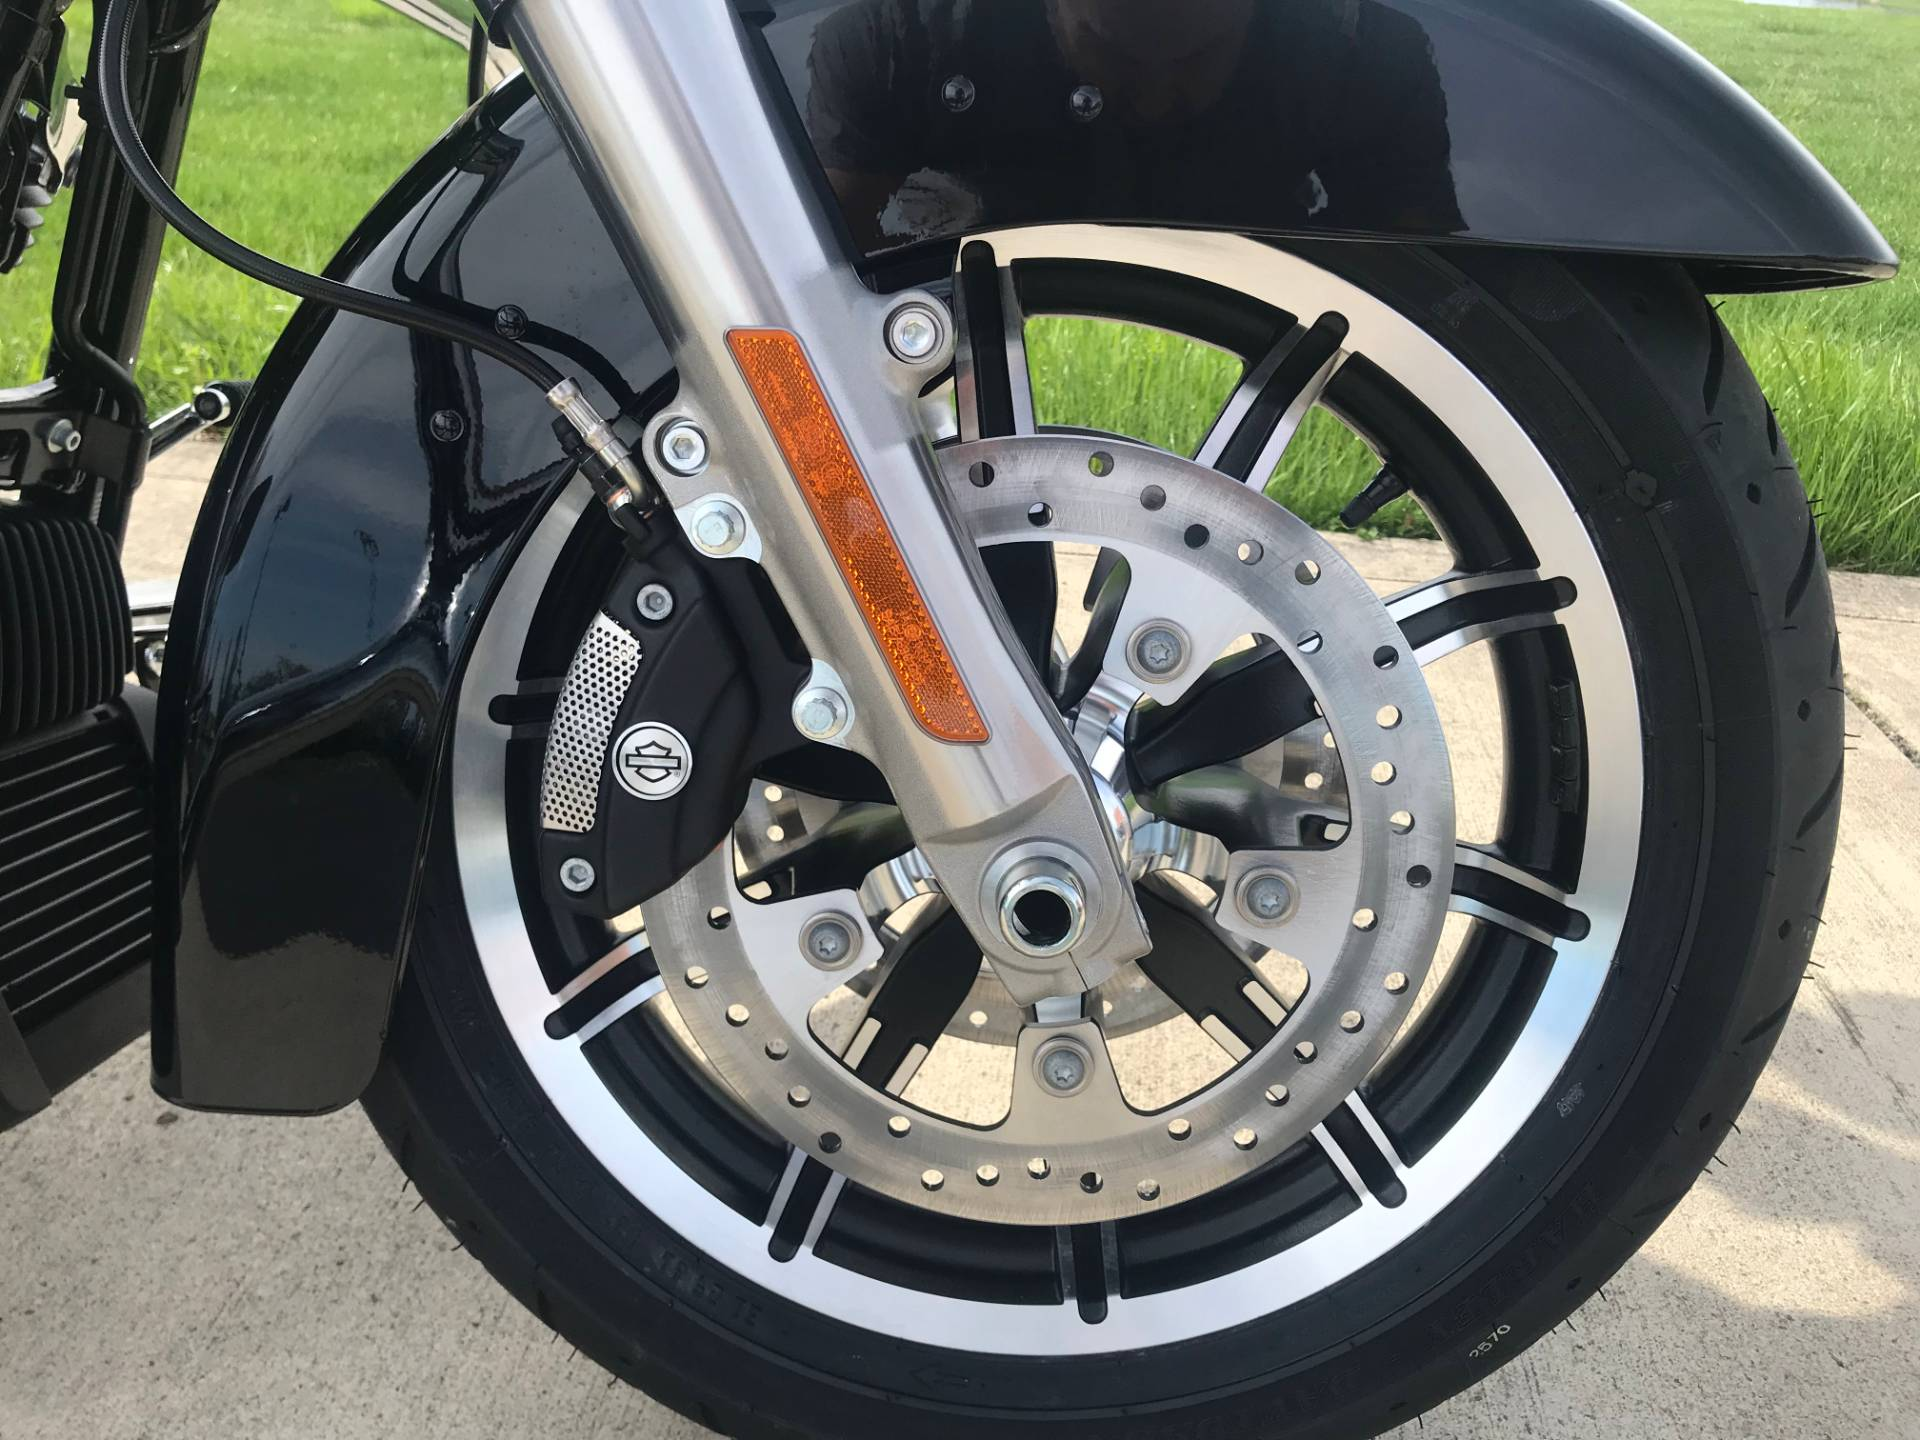 2019 Harley-Davidson Electra Glide Standard in Sunbury, Ohio - Photo 17